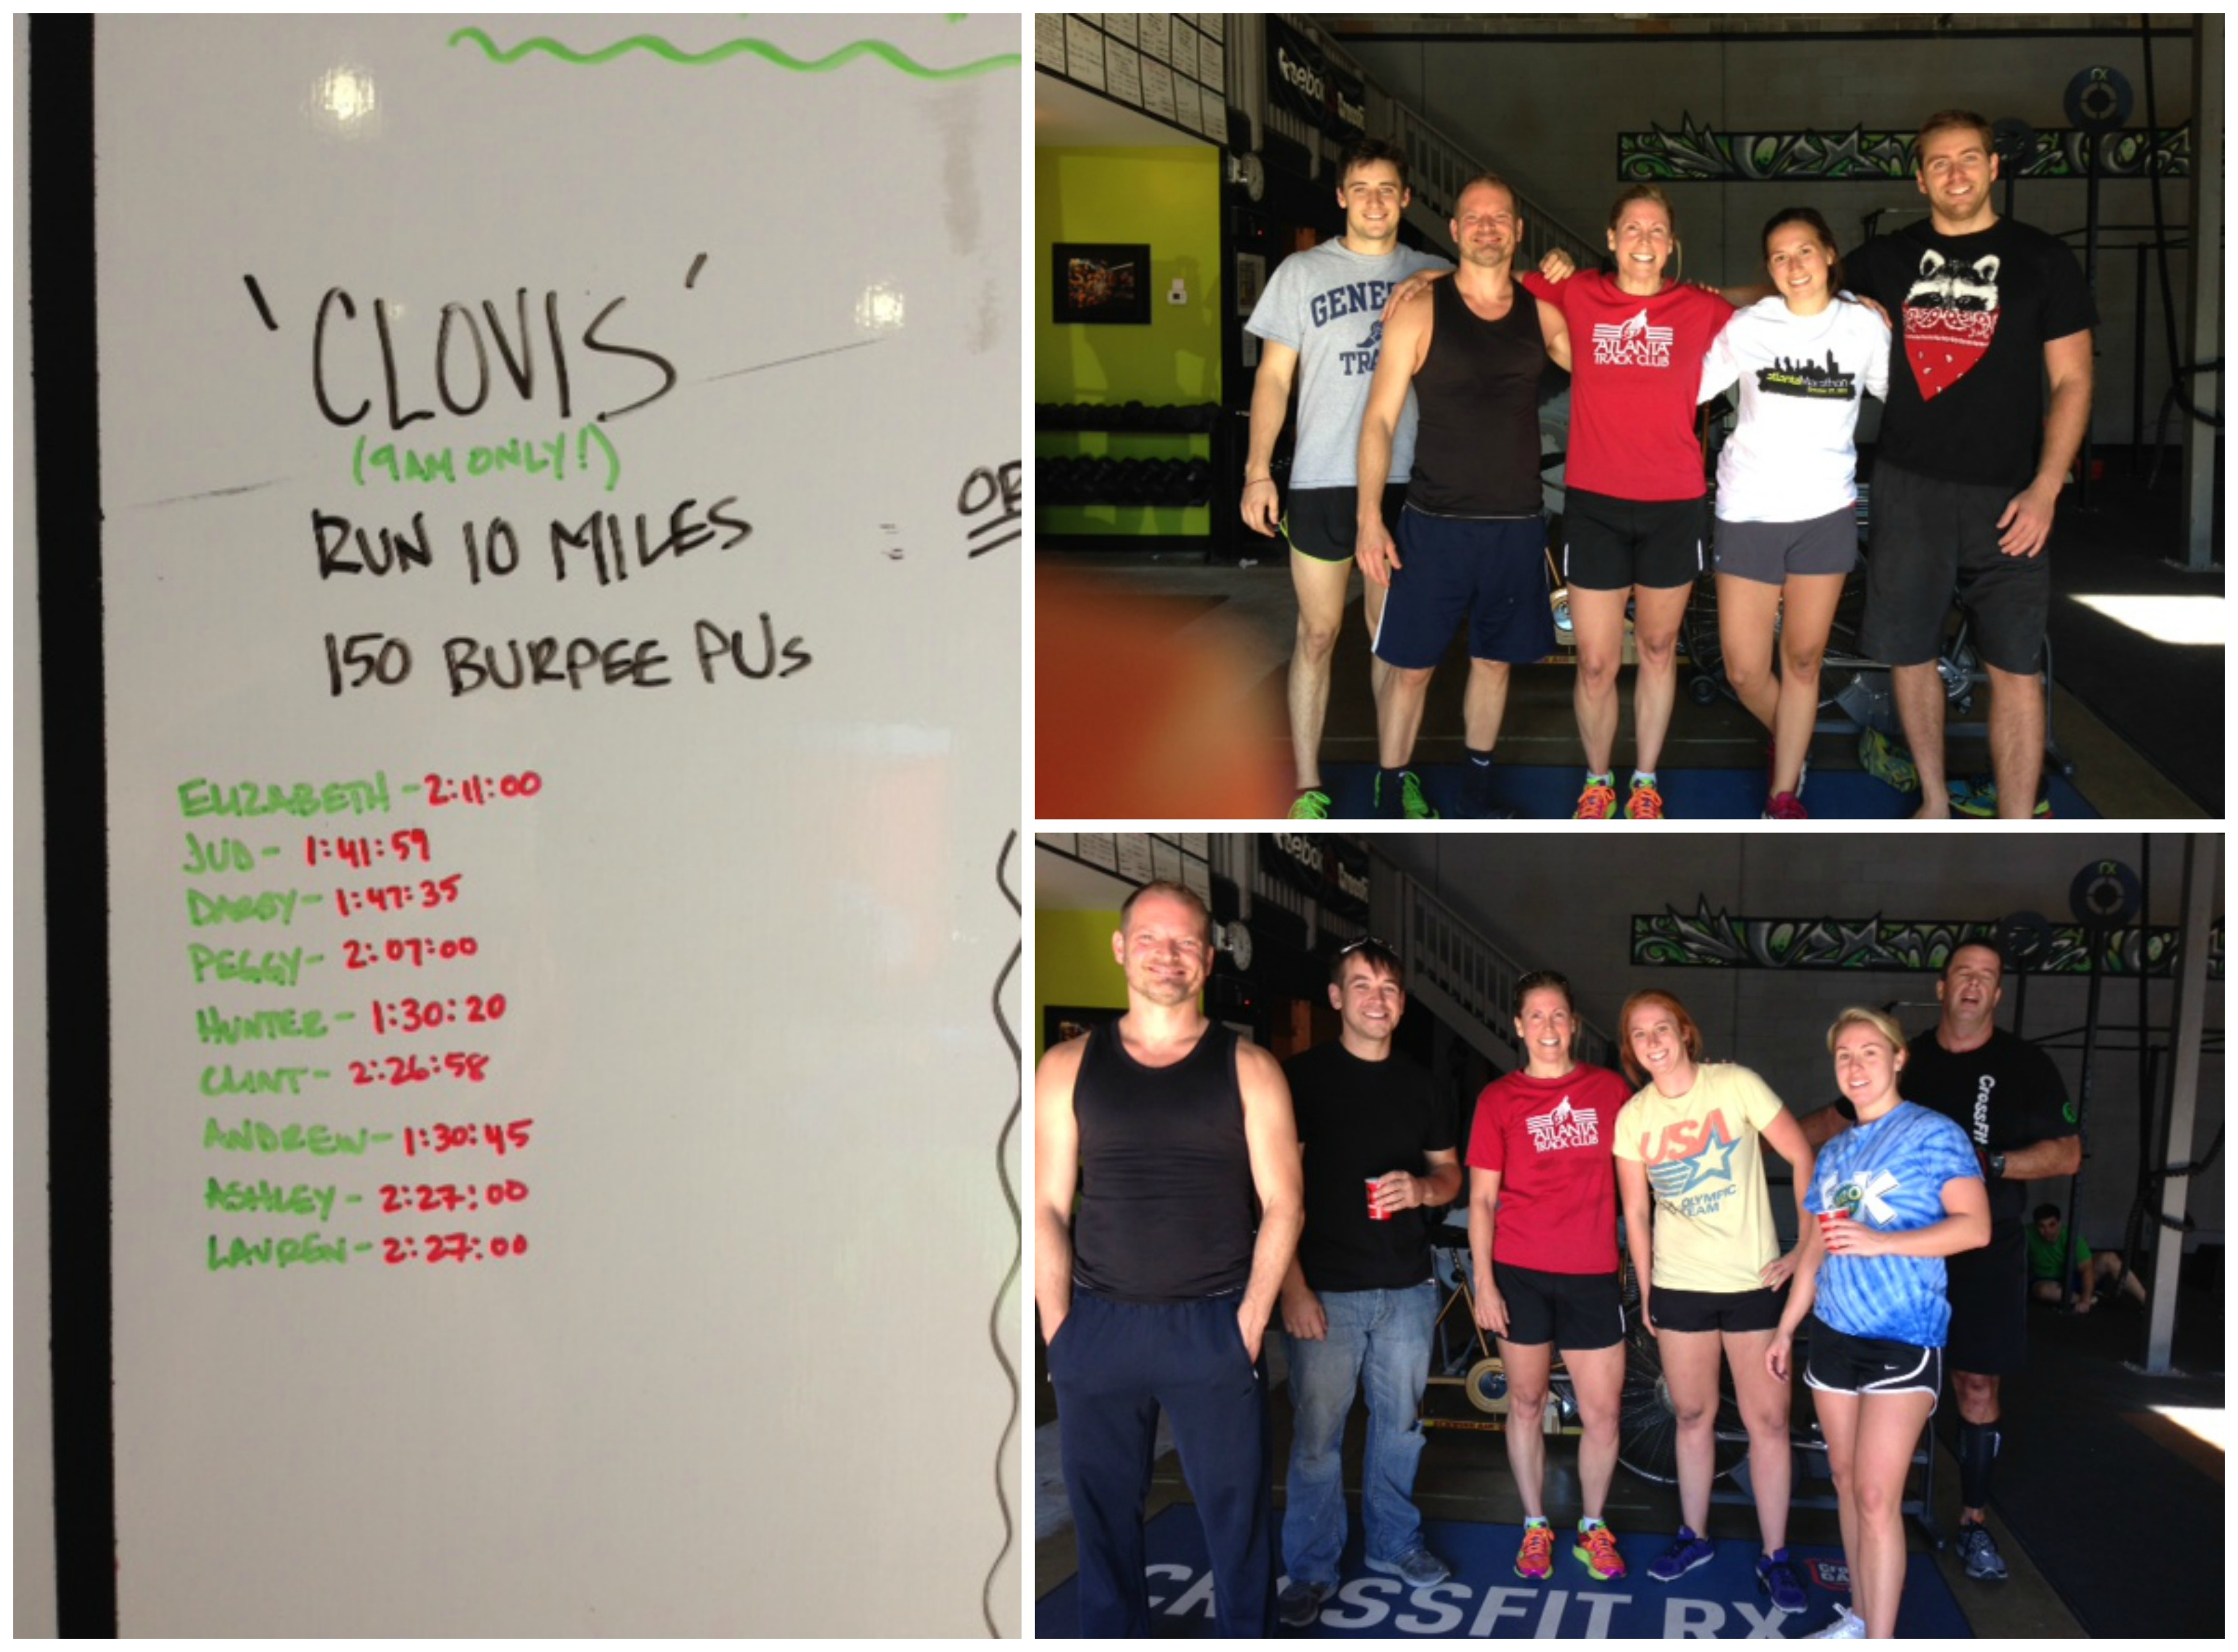 Great job Clovis Crew!